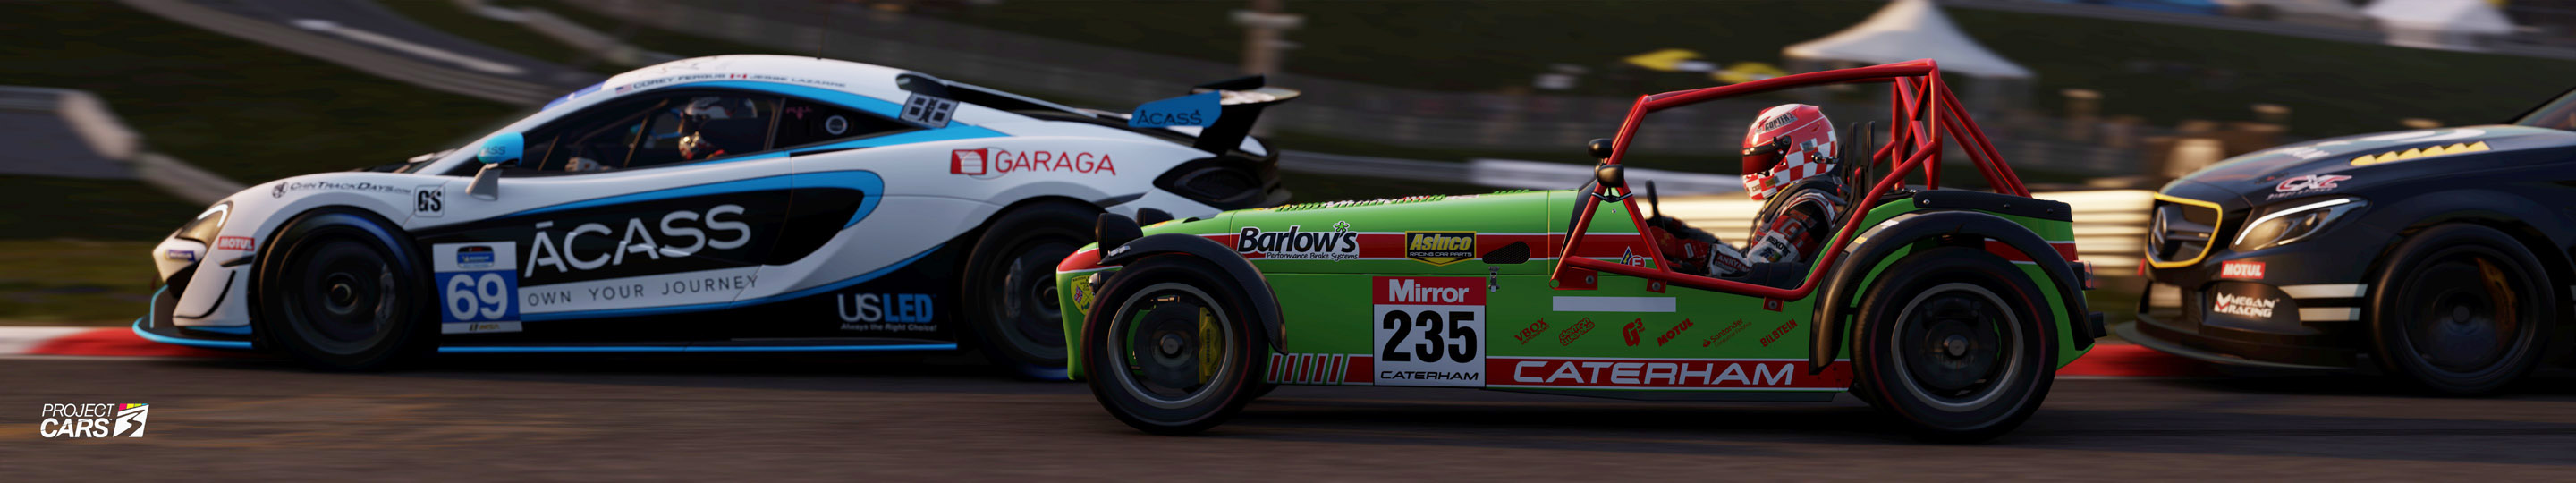 2 PROJECT CARS 3 CATERHAM 620R at BRANDS HATCH copy.jpg